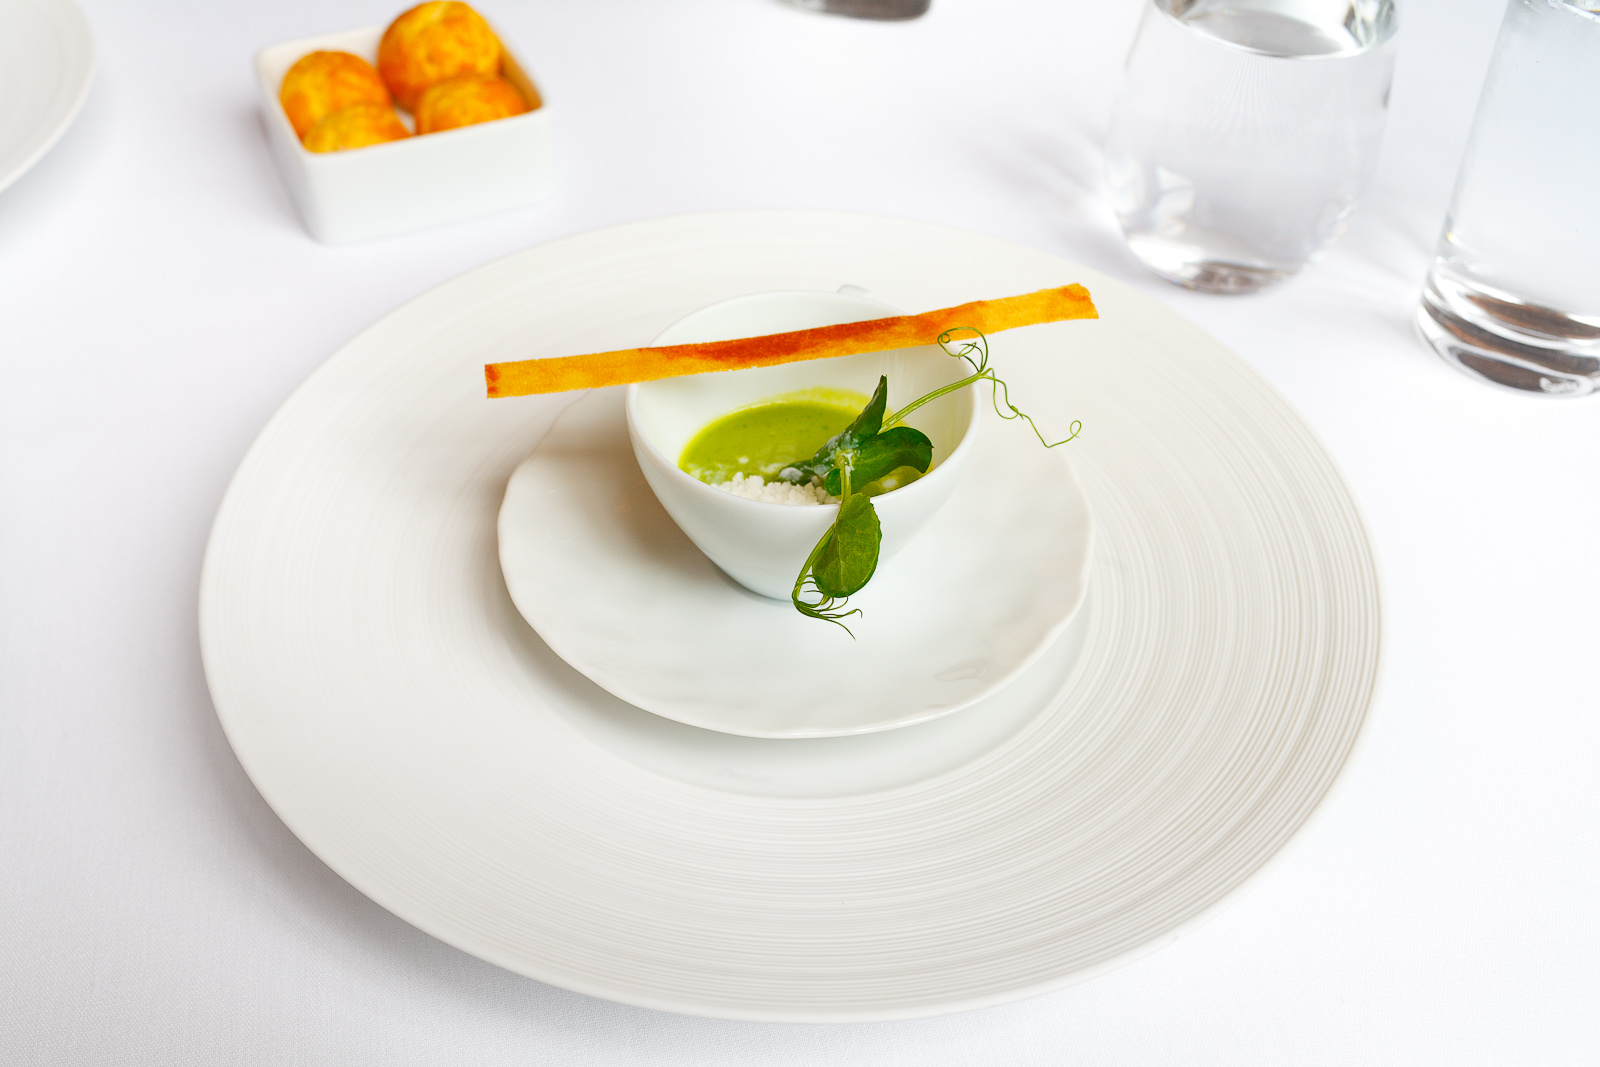 Canape: Chilled pea soup with ham chip